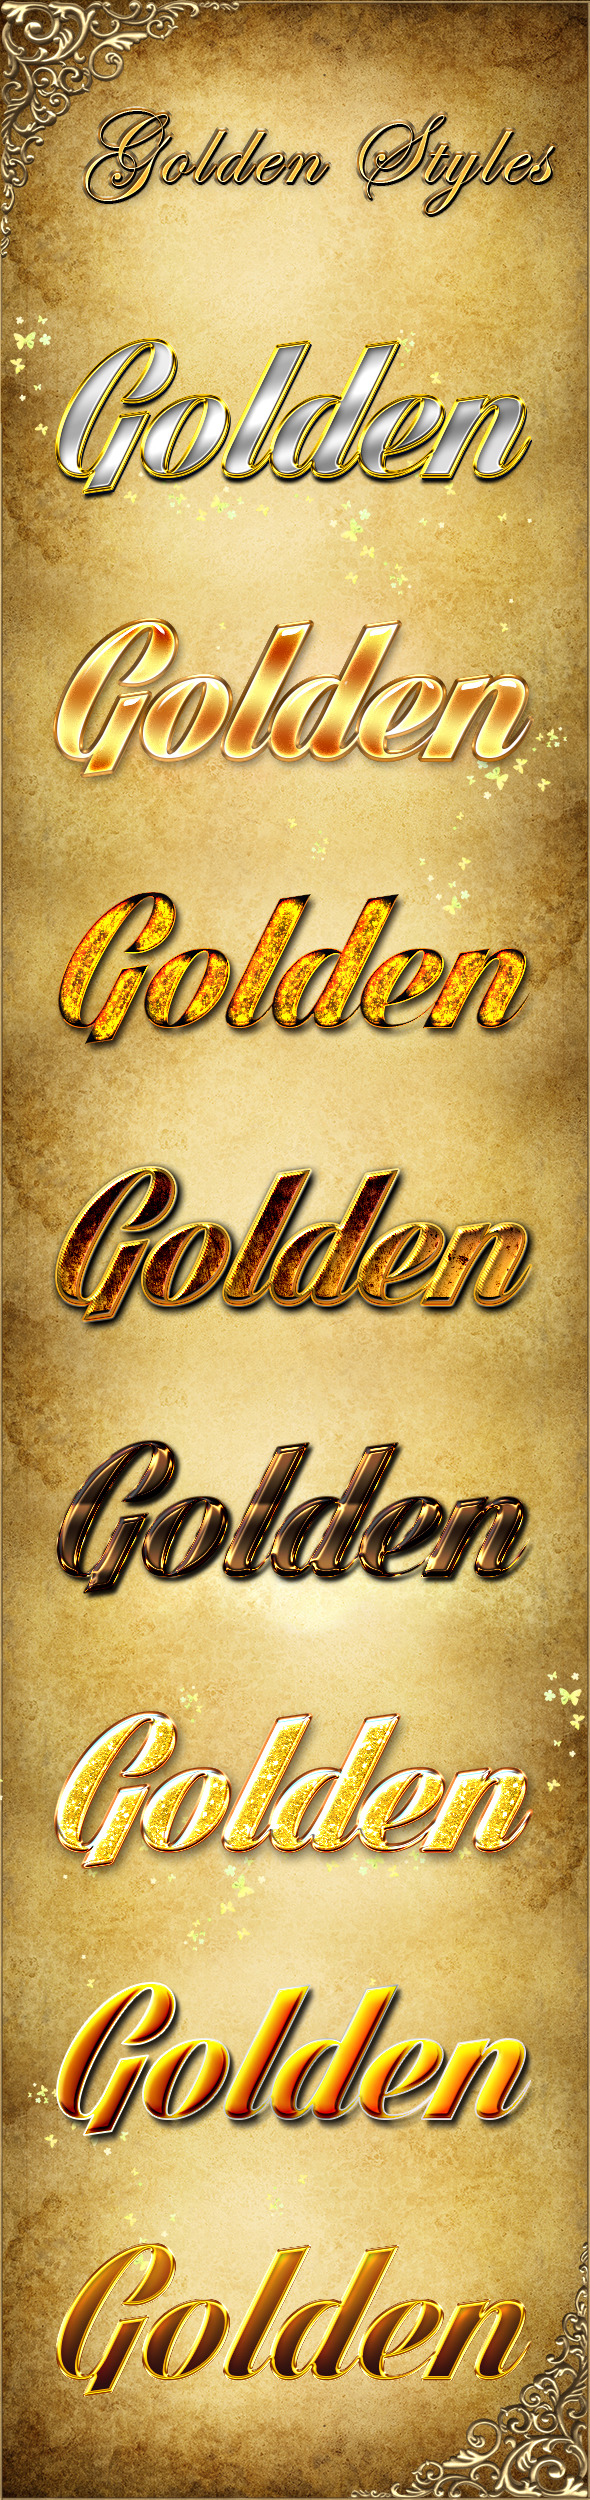 Golden Styles - Text Effects Styles